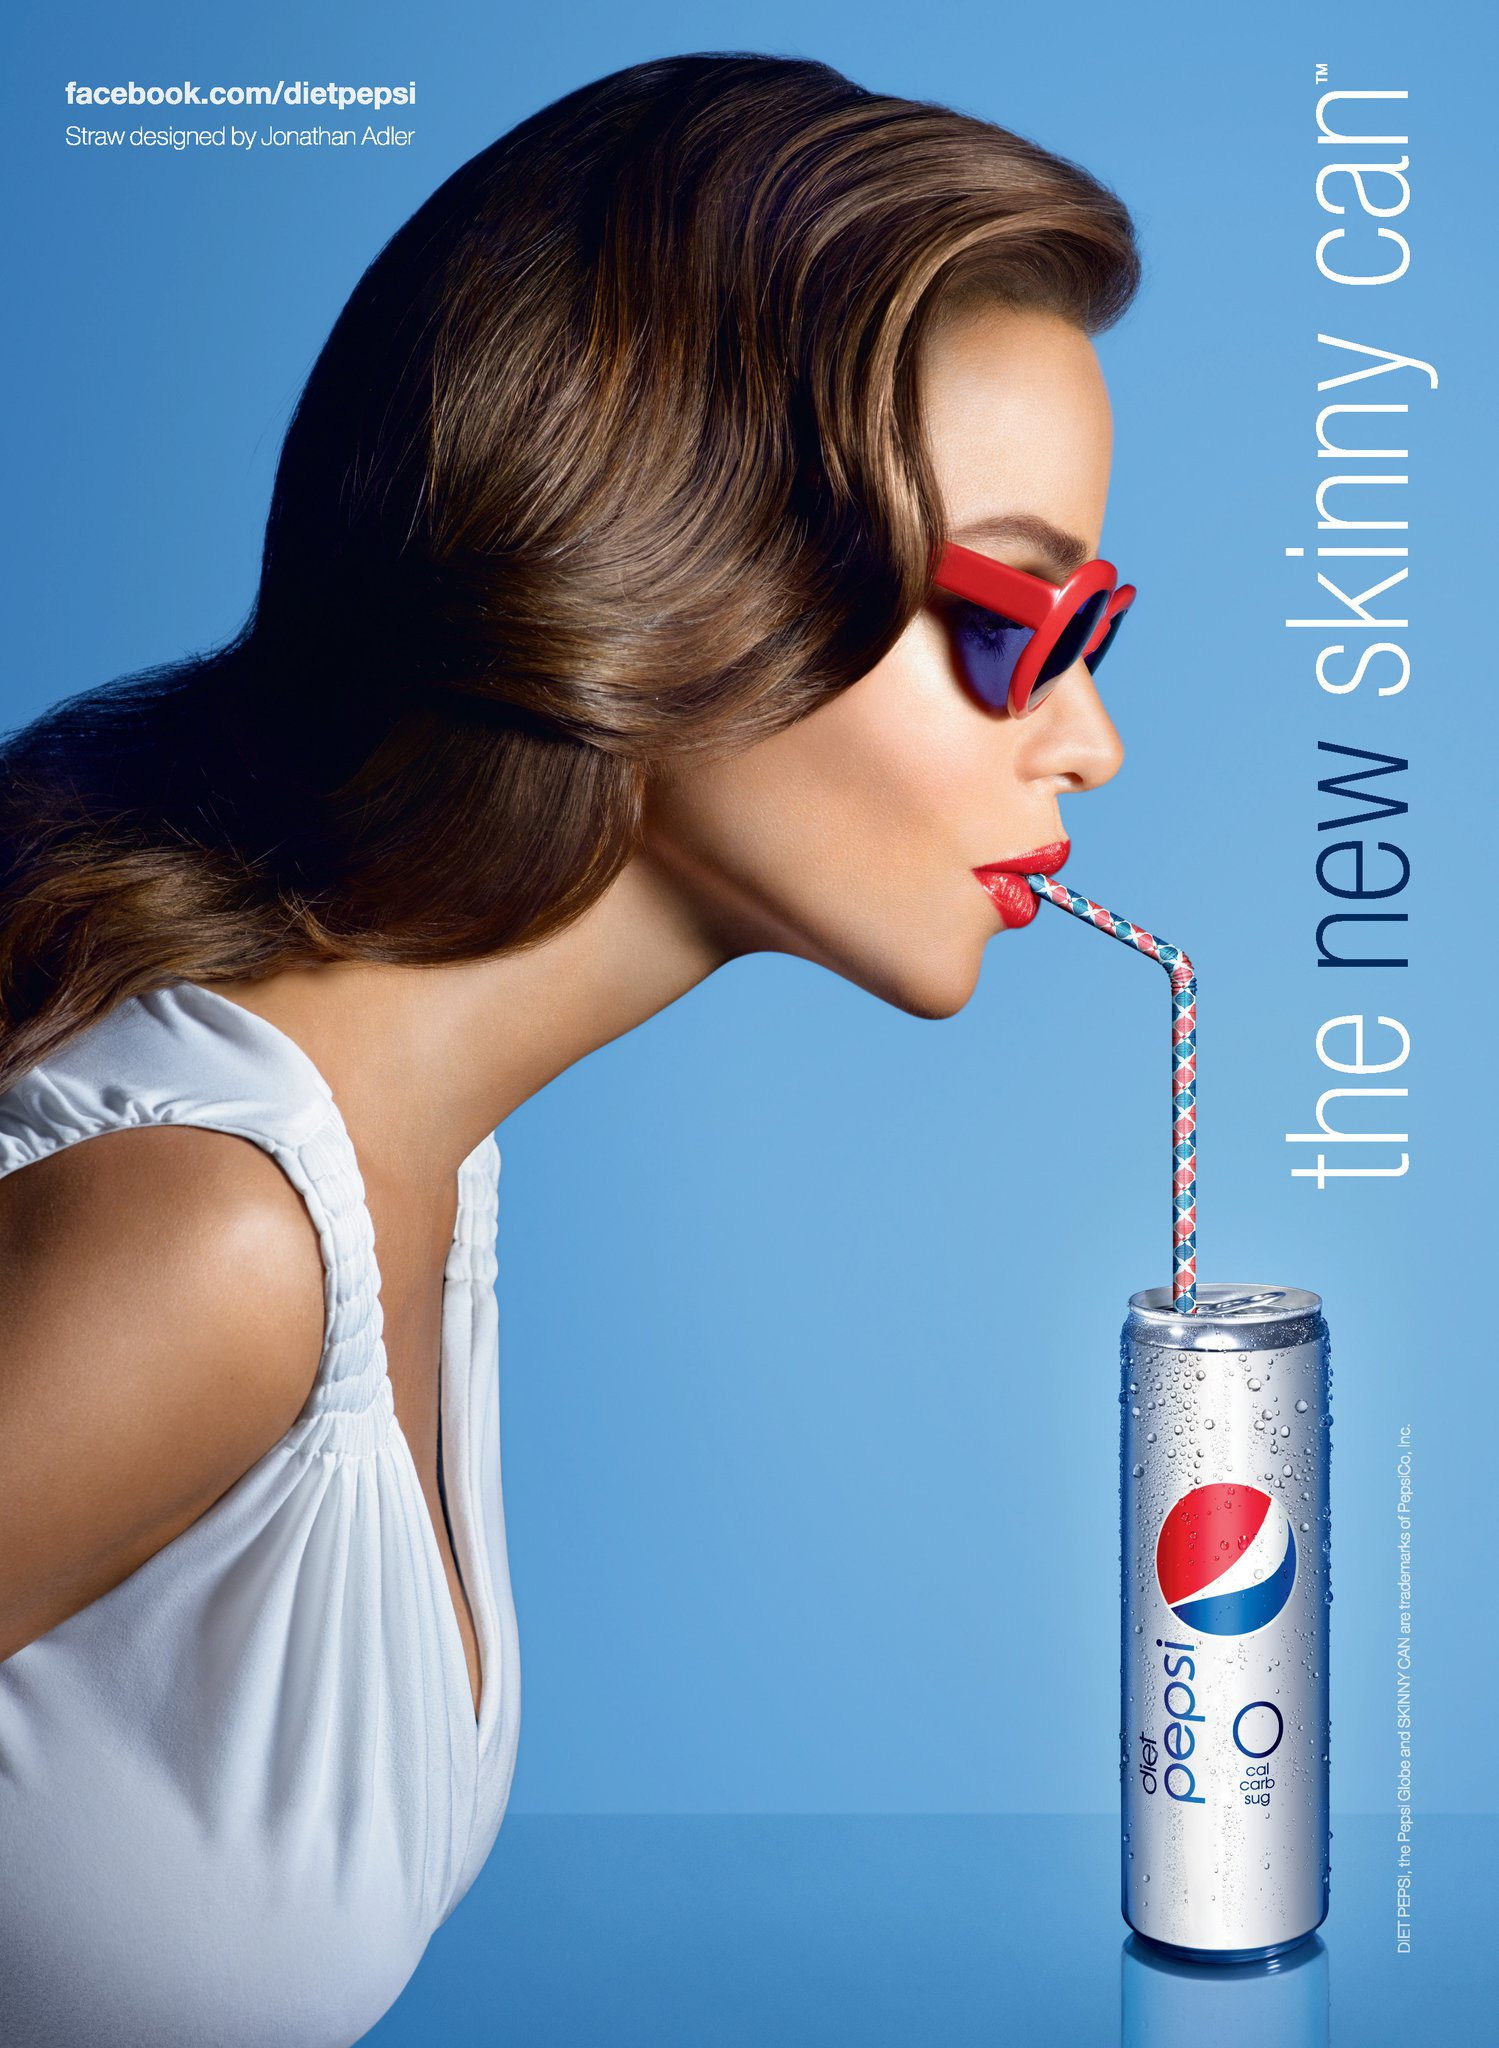 http://wanphing.files.wordpress.com/2011/05/diet_pepsi_skinny_can_ad.jpg